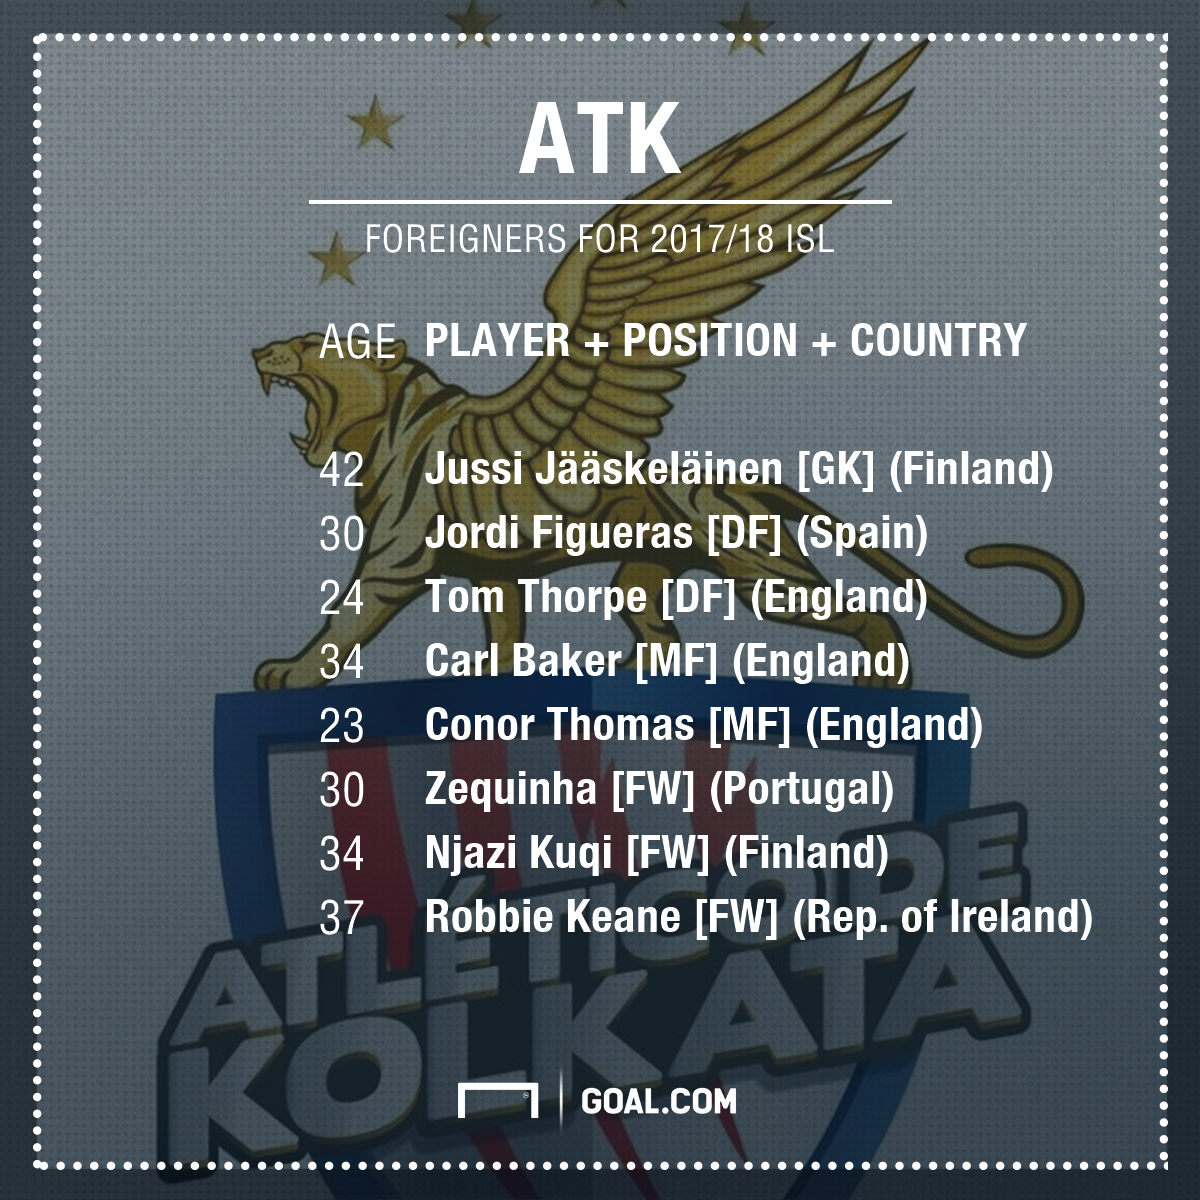 ATK foreign clan